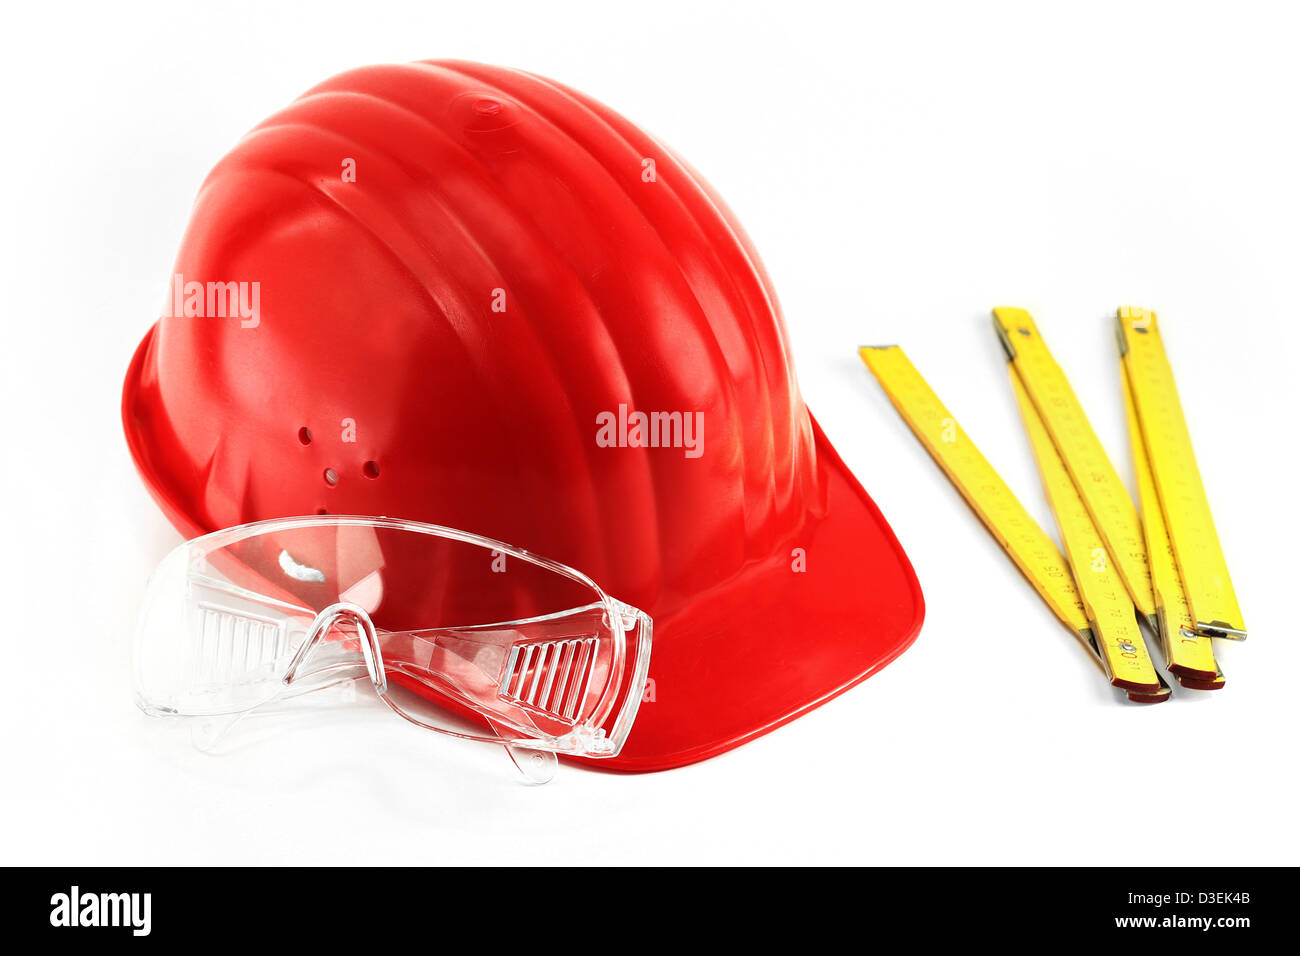 Red protection helmet and transparent protection glasses next to yellow meter - Stock Image